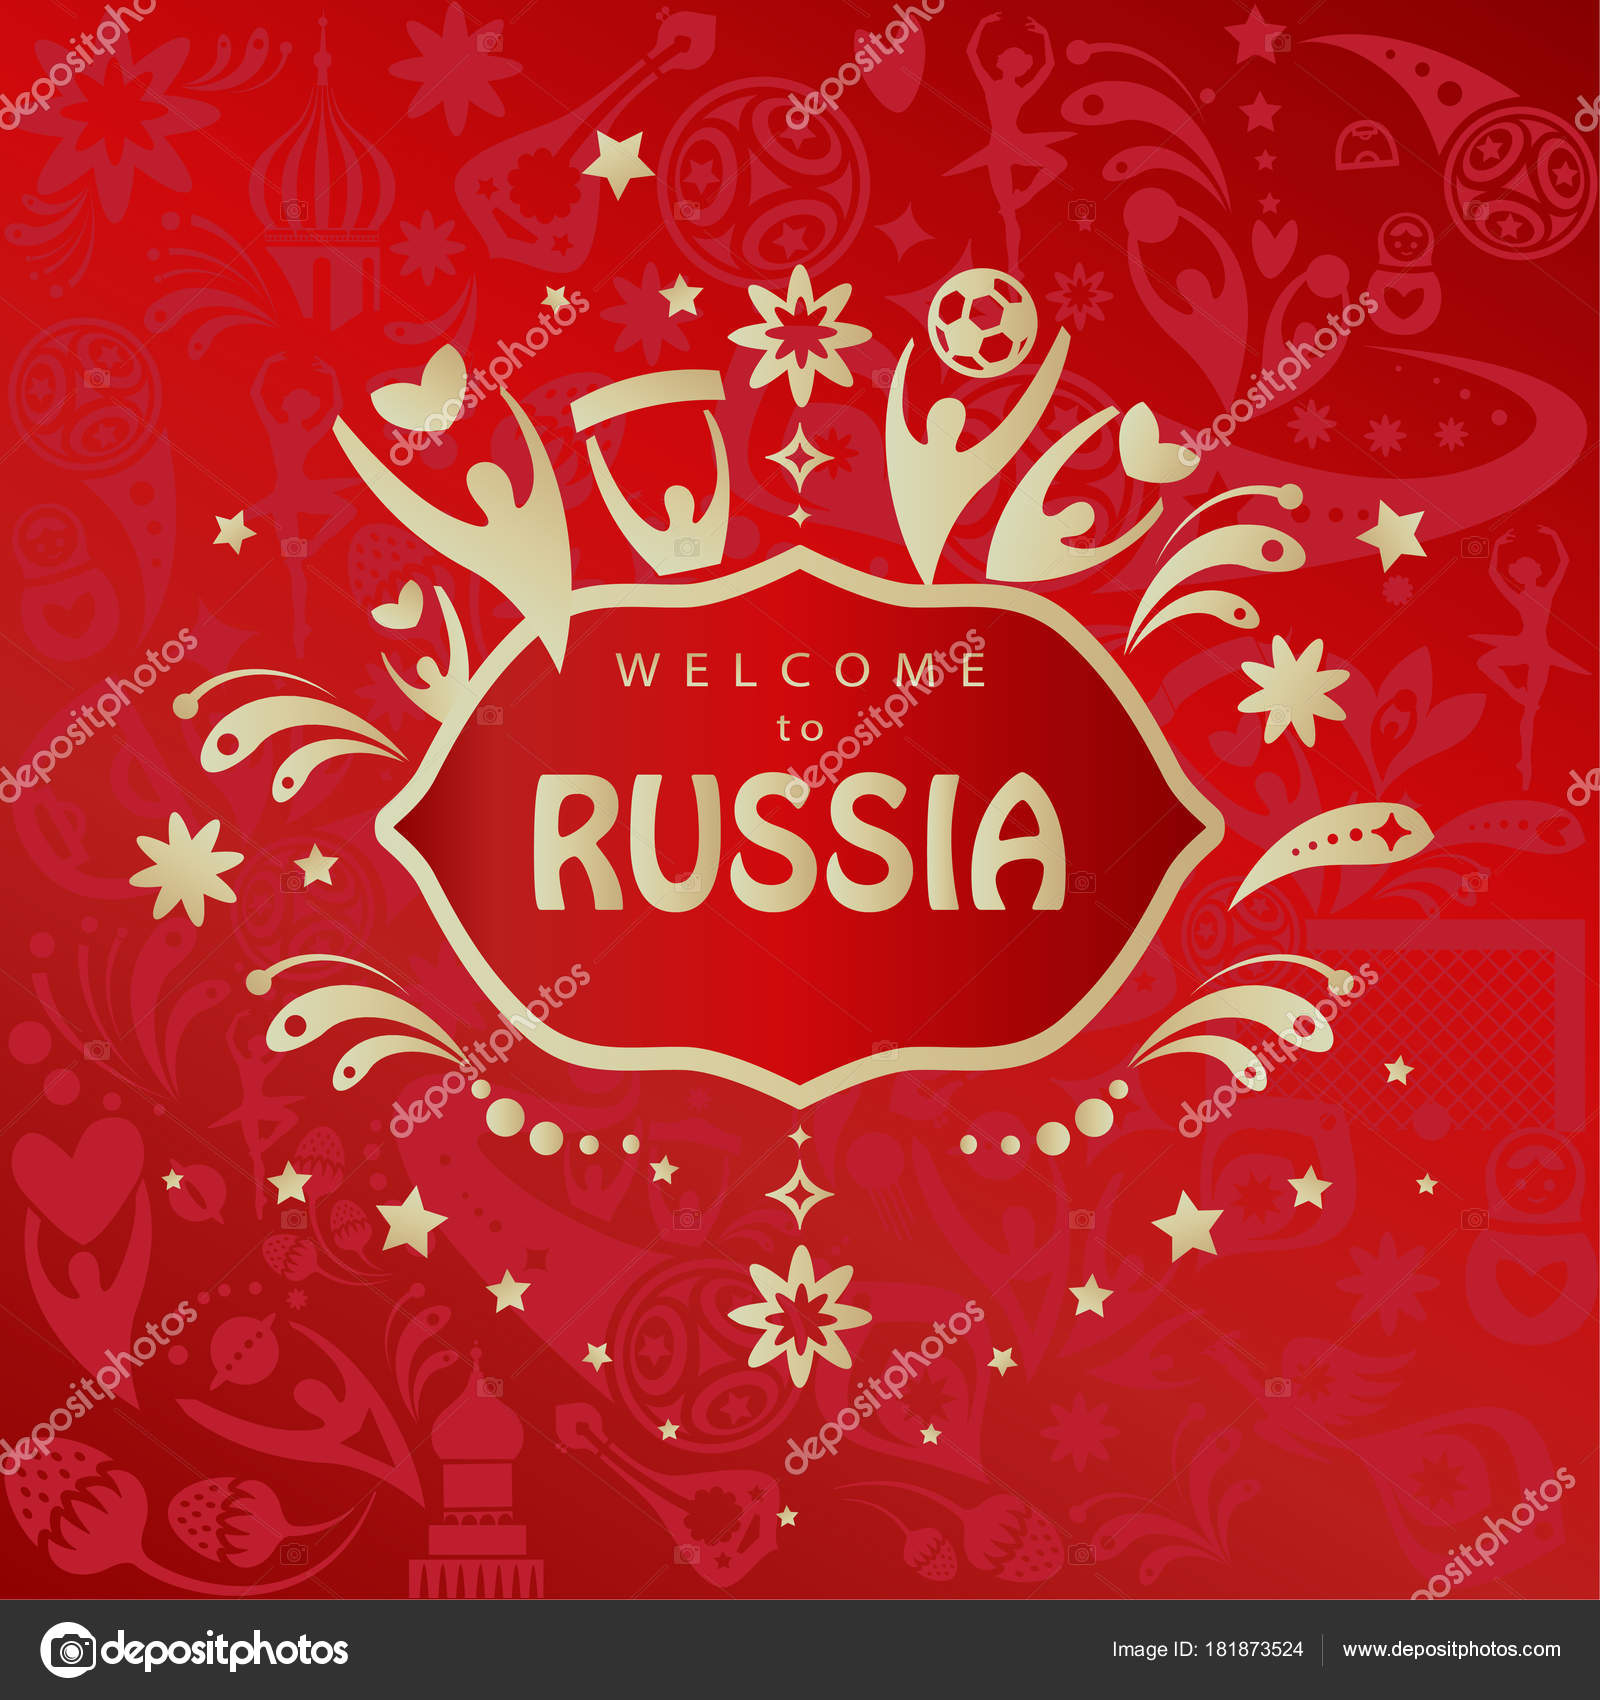 2018 world cup russia football welcome russia abstract invitation 2018 world cup russia football welcome to russia abstract invitation banner vector template russian folk art background with sports elements soccer ball stopboris Images